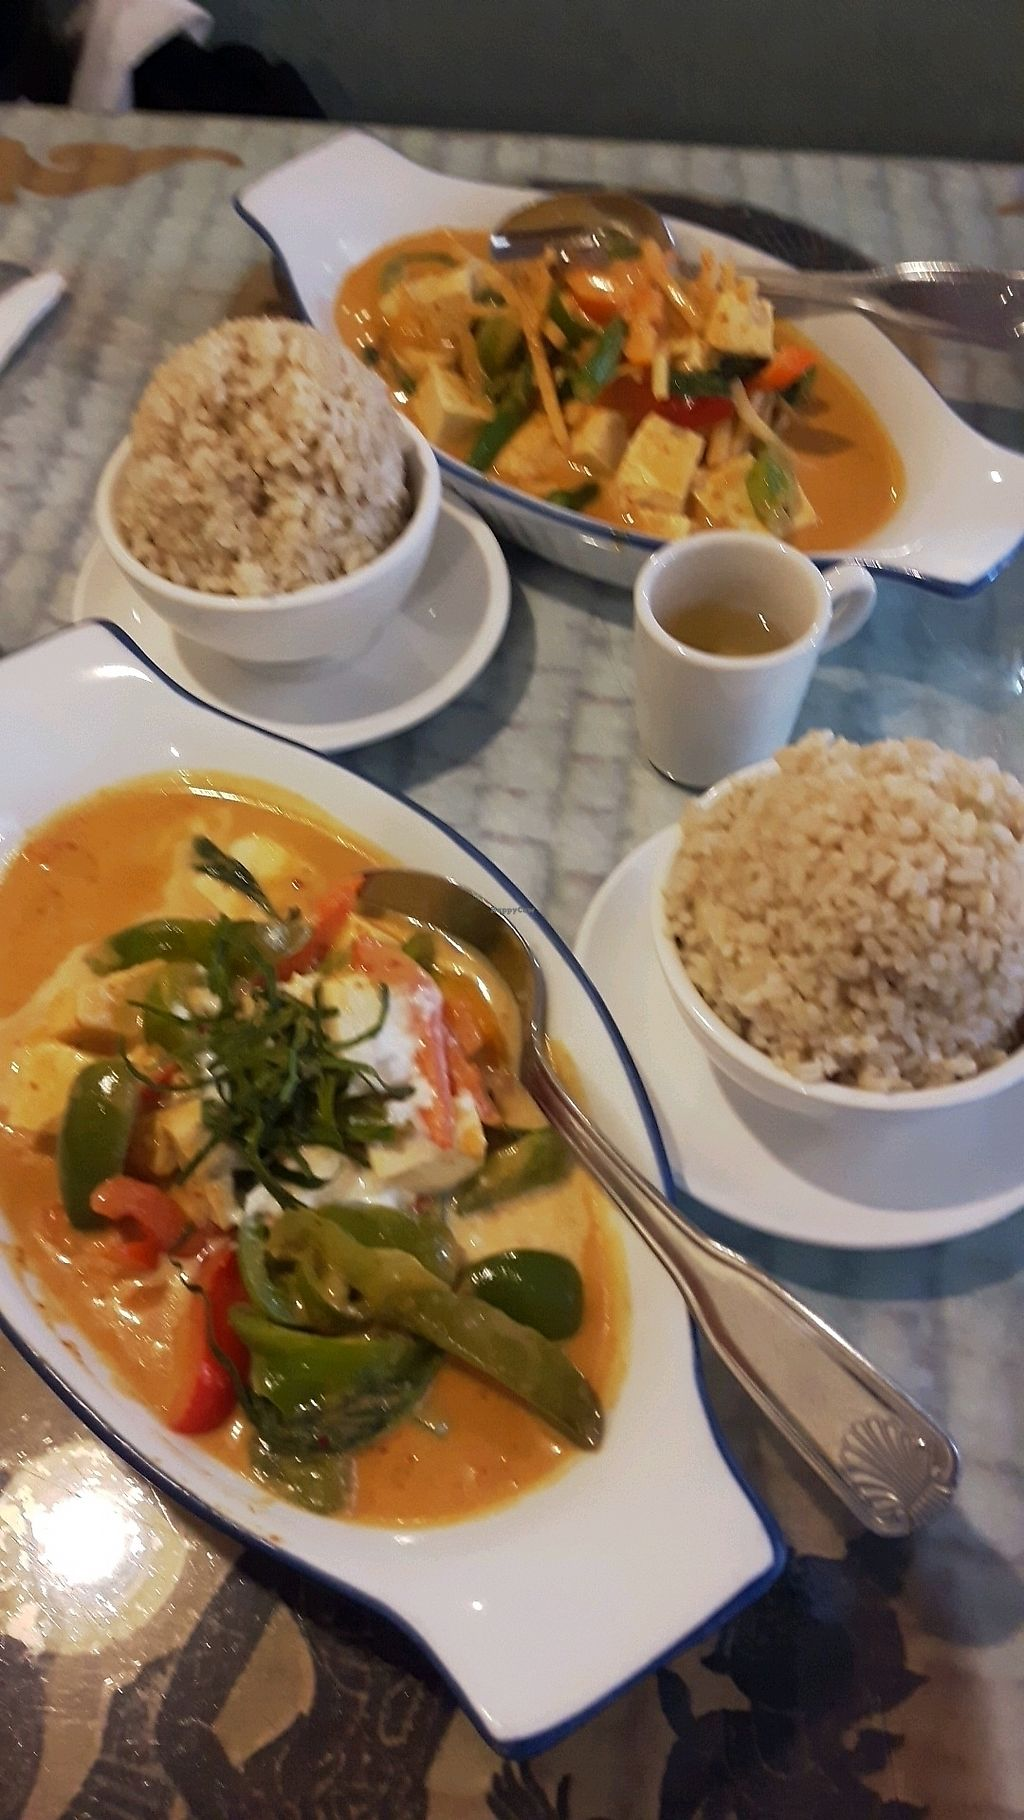 """Photo of Thai Cuisine  by <a href=""""/members/profile/BridgetLove"""">BridgetLove</a> <br/>Curries for life <br/> January 3, 2018  - <a href='/contact/abuse/image/100307/342424'>Report</a>"""